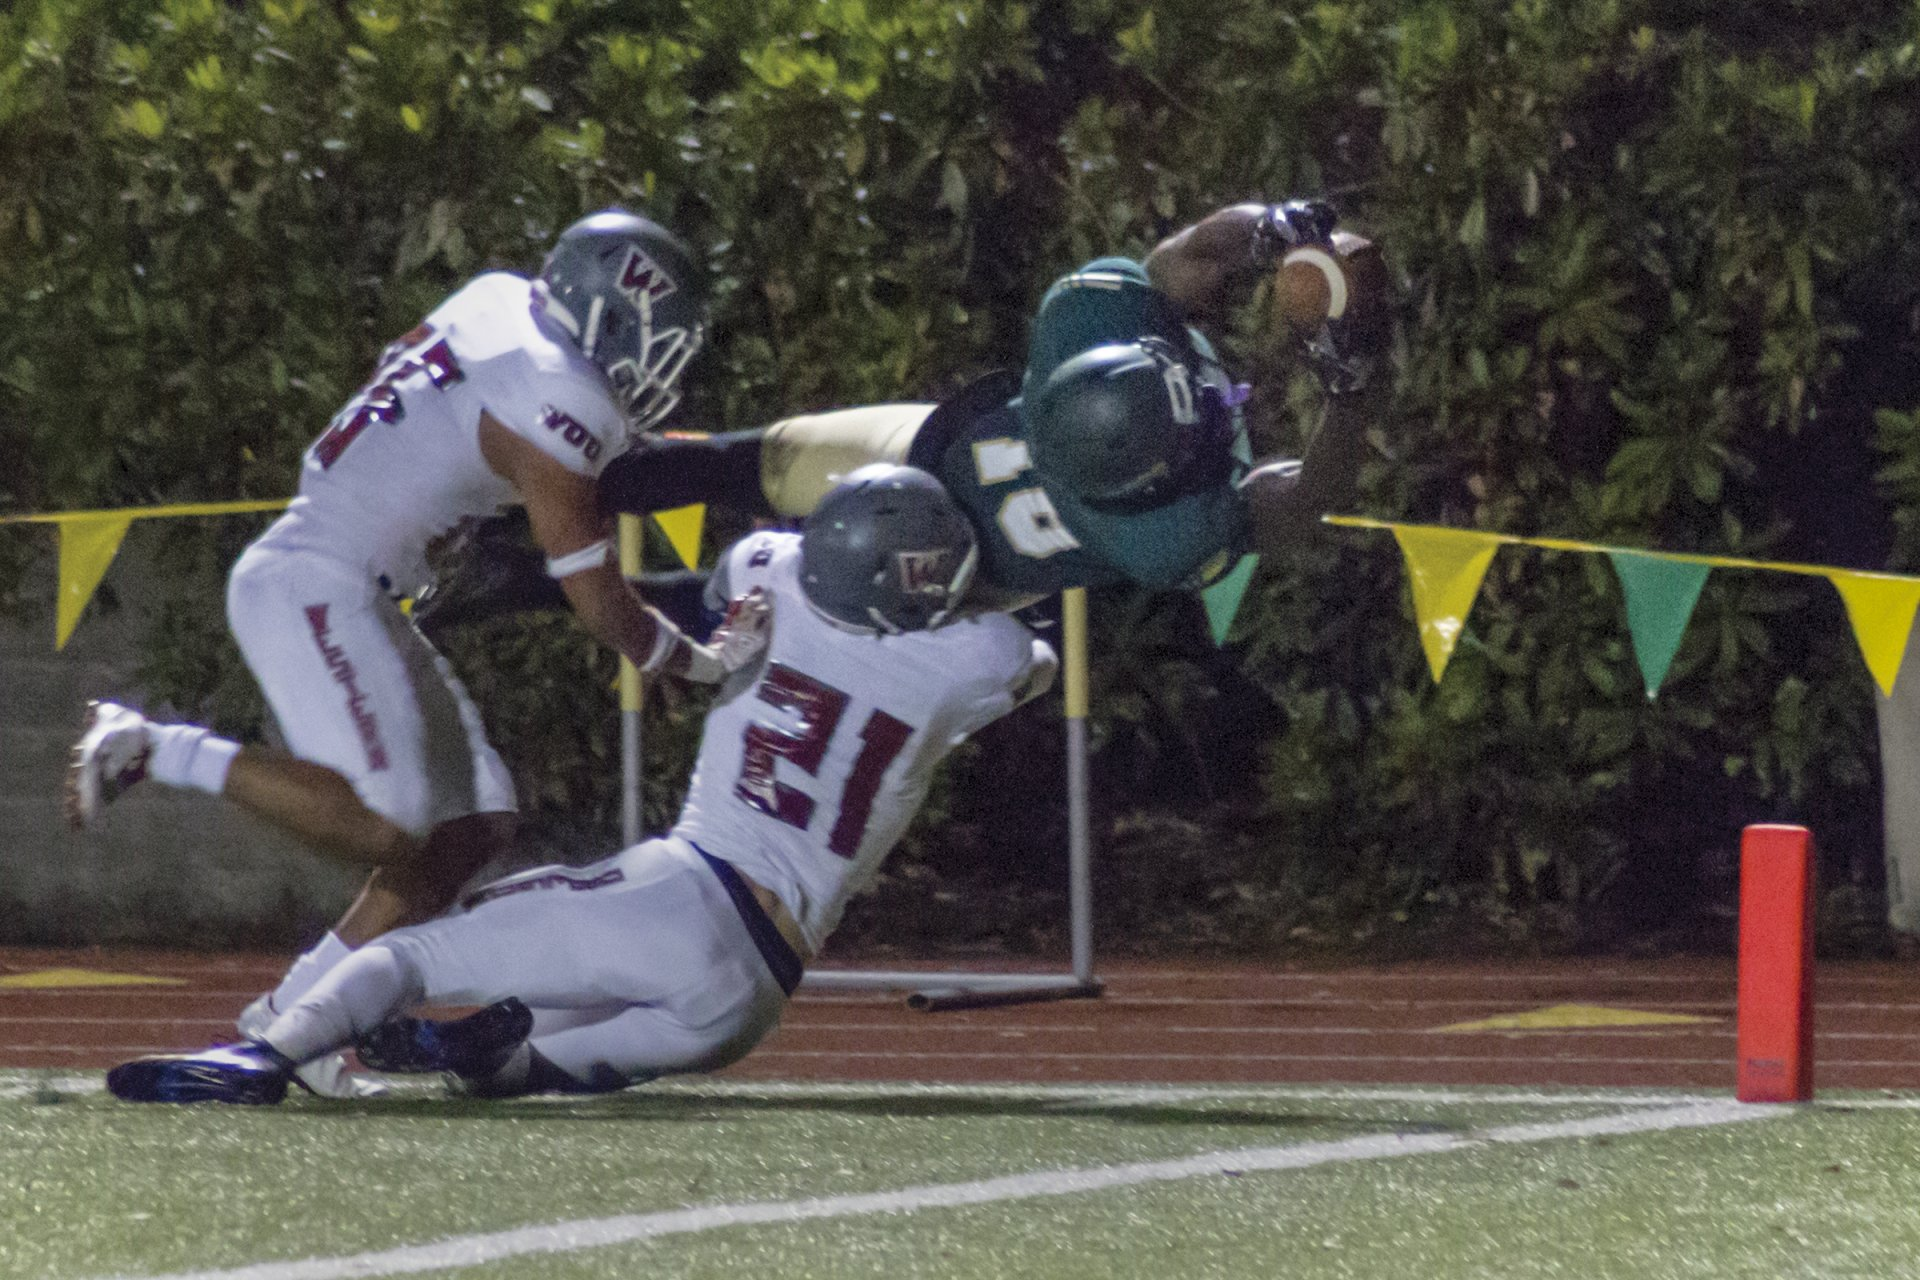 Jamere Austin scoring a touchdown by lunging into the end zone. | Ian Benjamin Finnegan Thompson